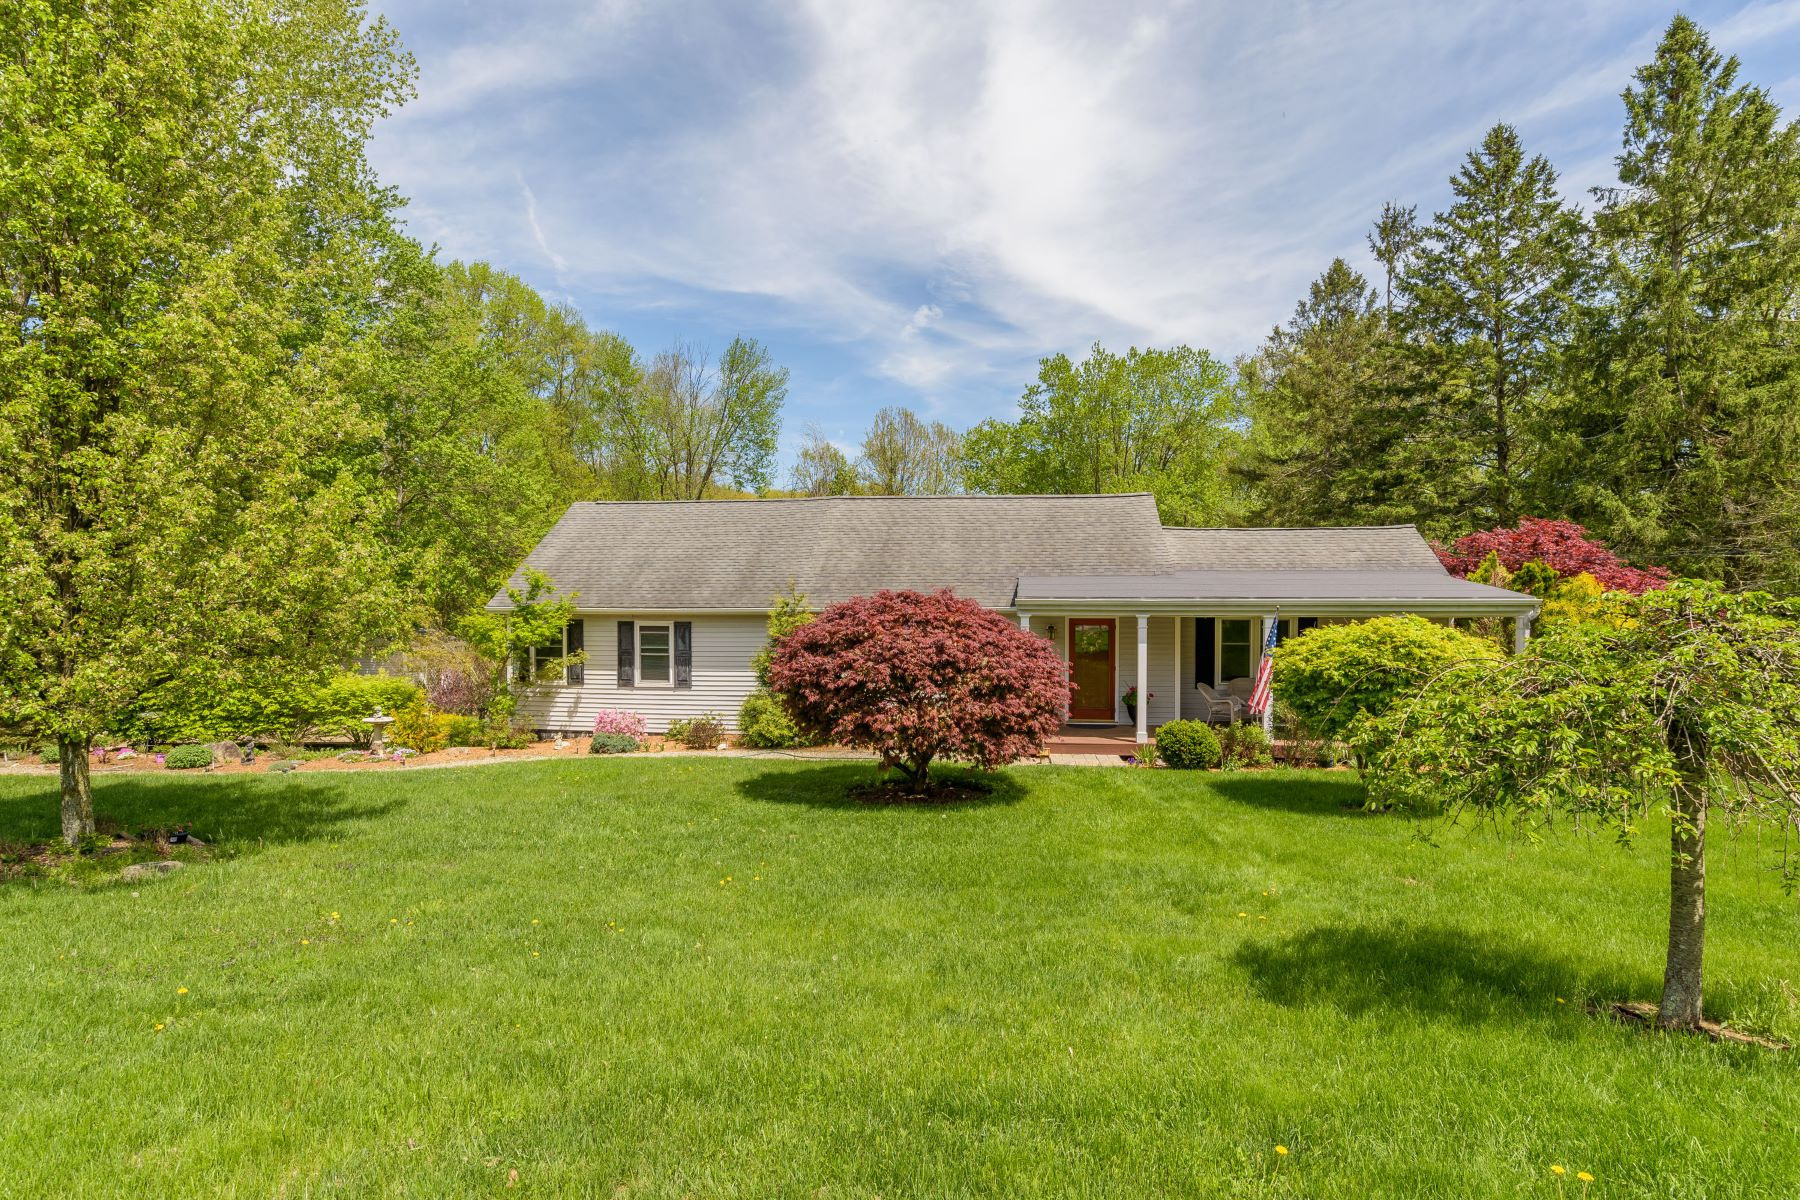 Single Family Home for Sale at One Of A Kind 21 Benedict Road Bethel, Connecticut 06801 United States